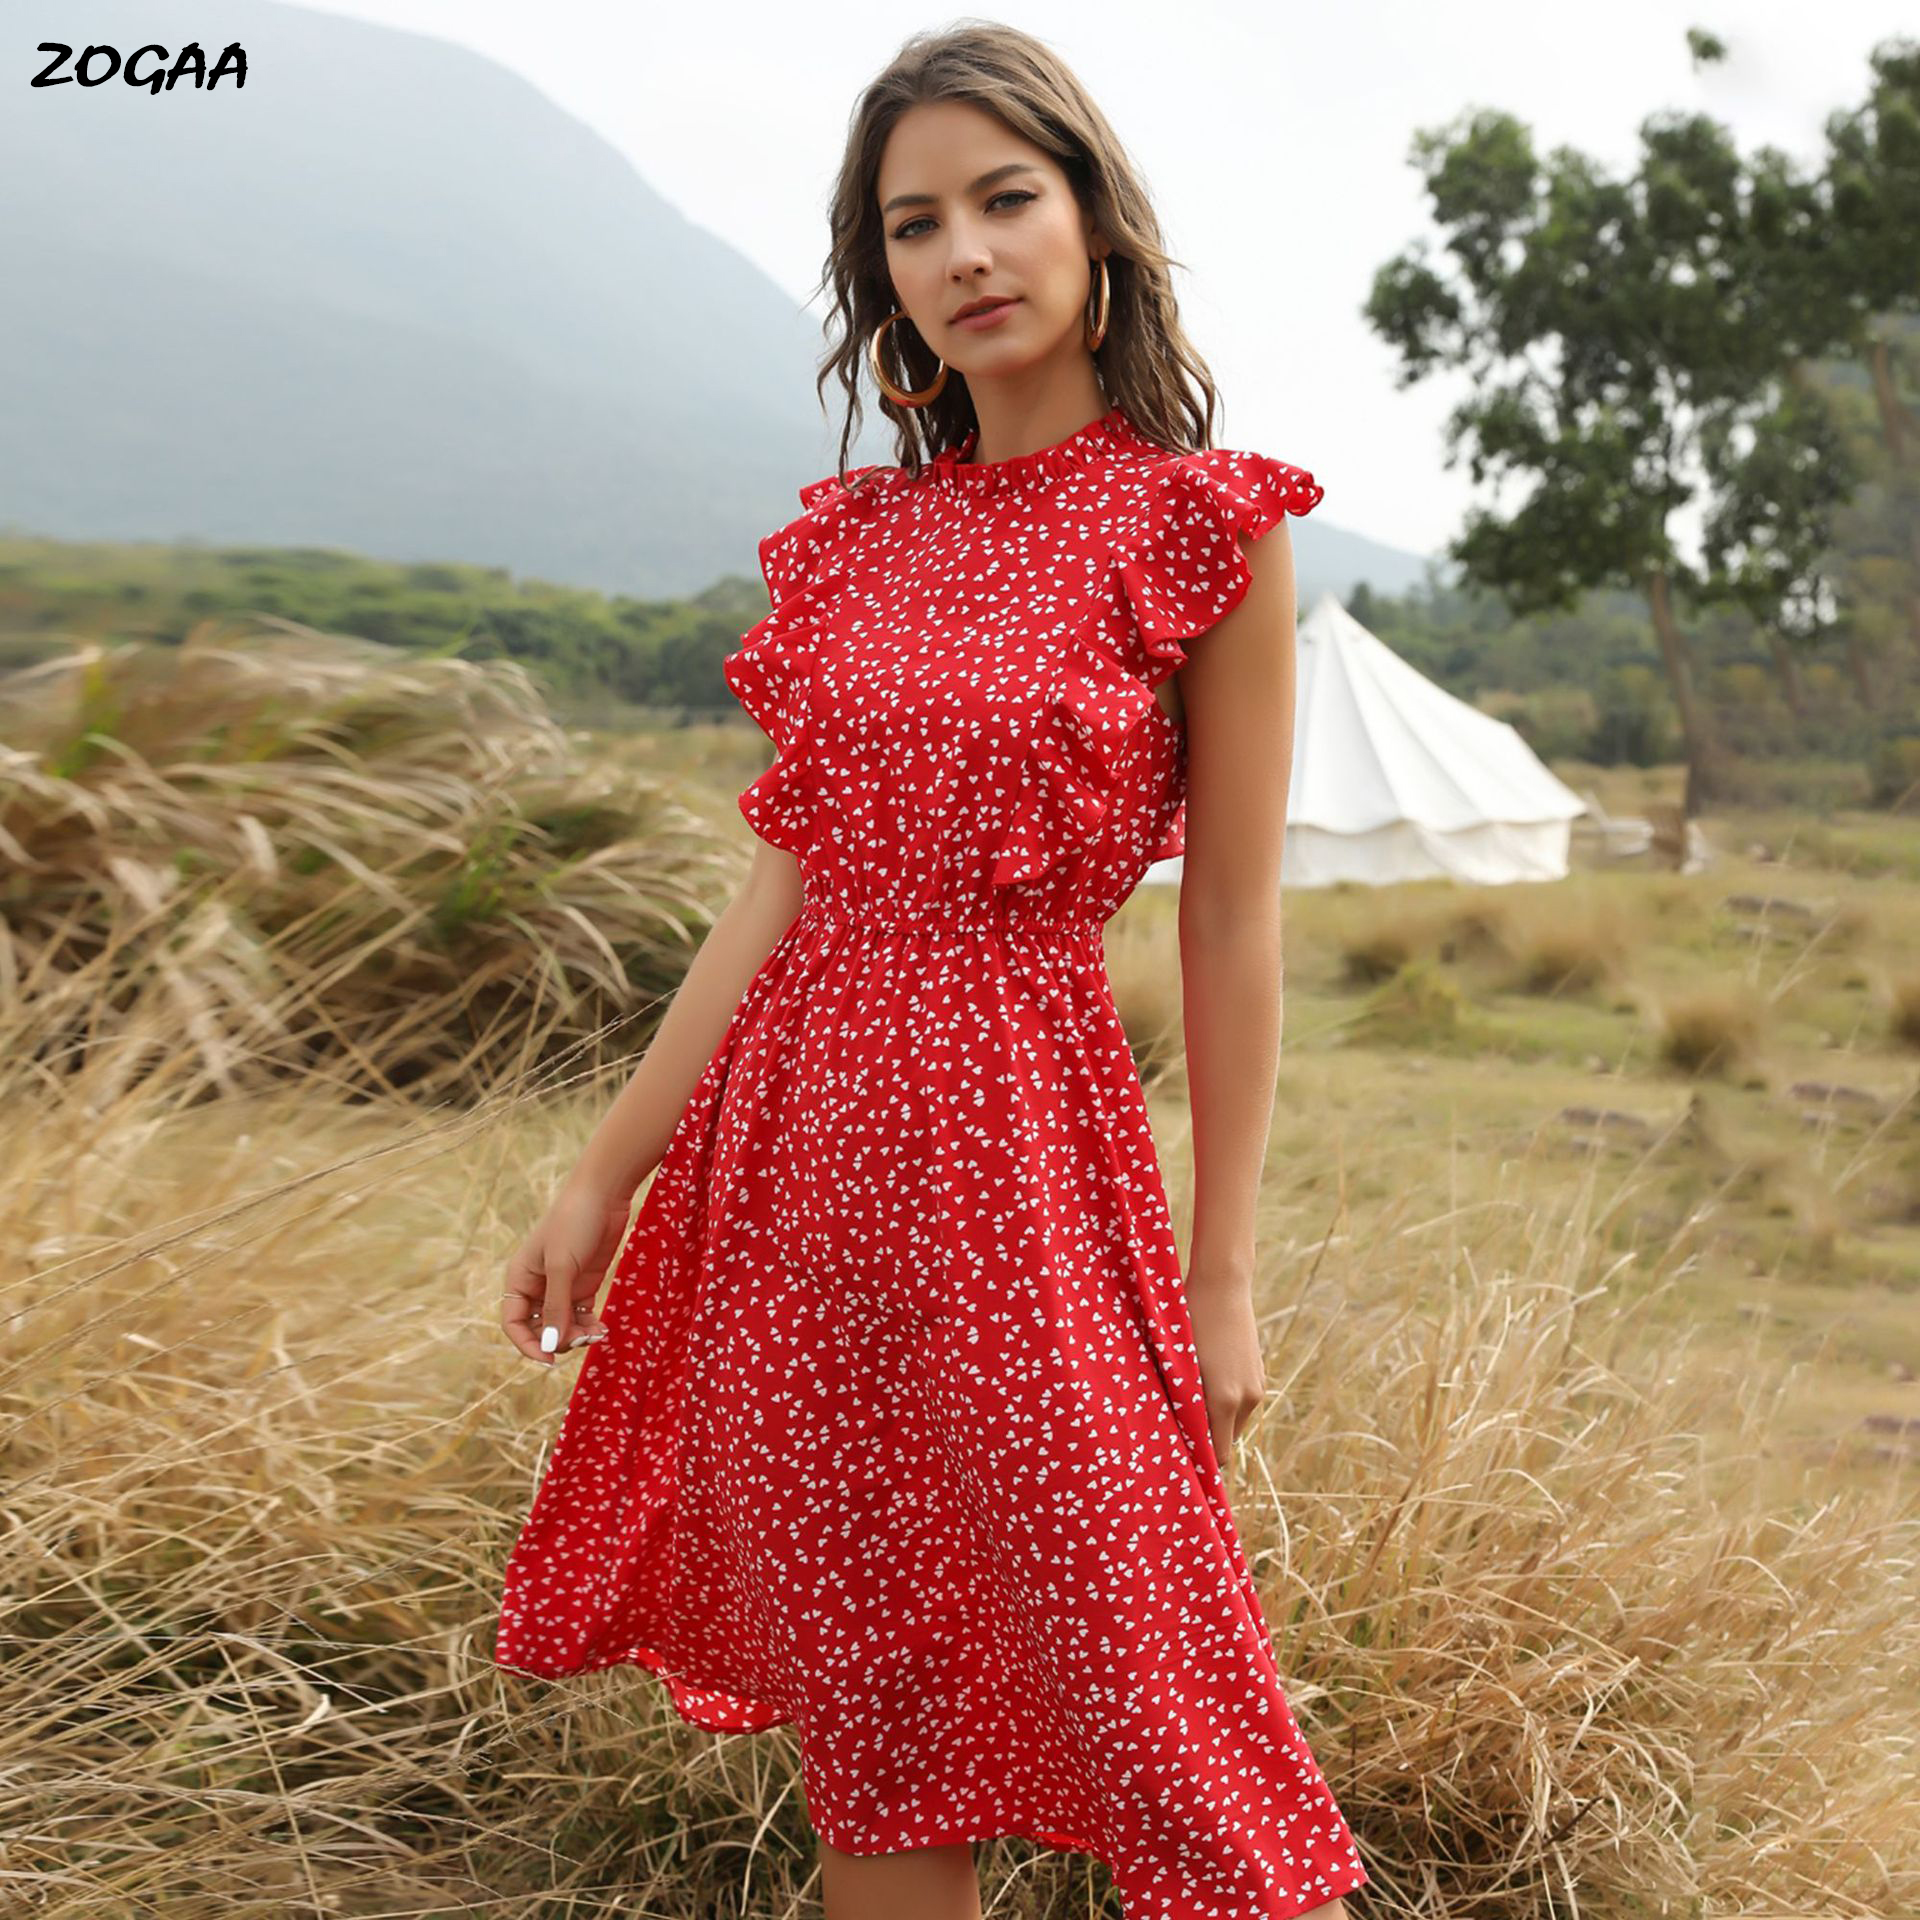 ZOGAA 2020 Summer Red Polka Dot Chiffon Skirt, Loose And Wild Mid-length Dress For Female